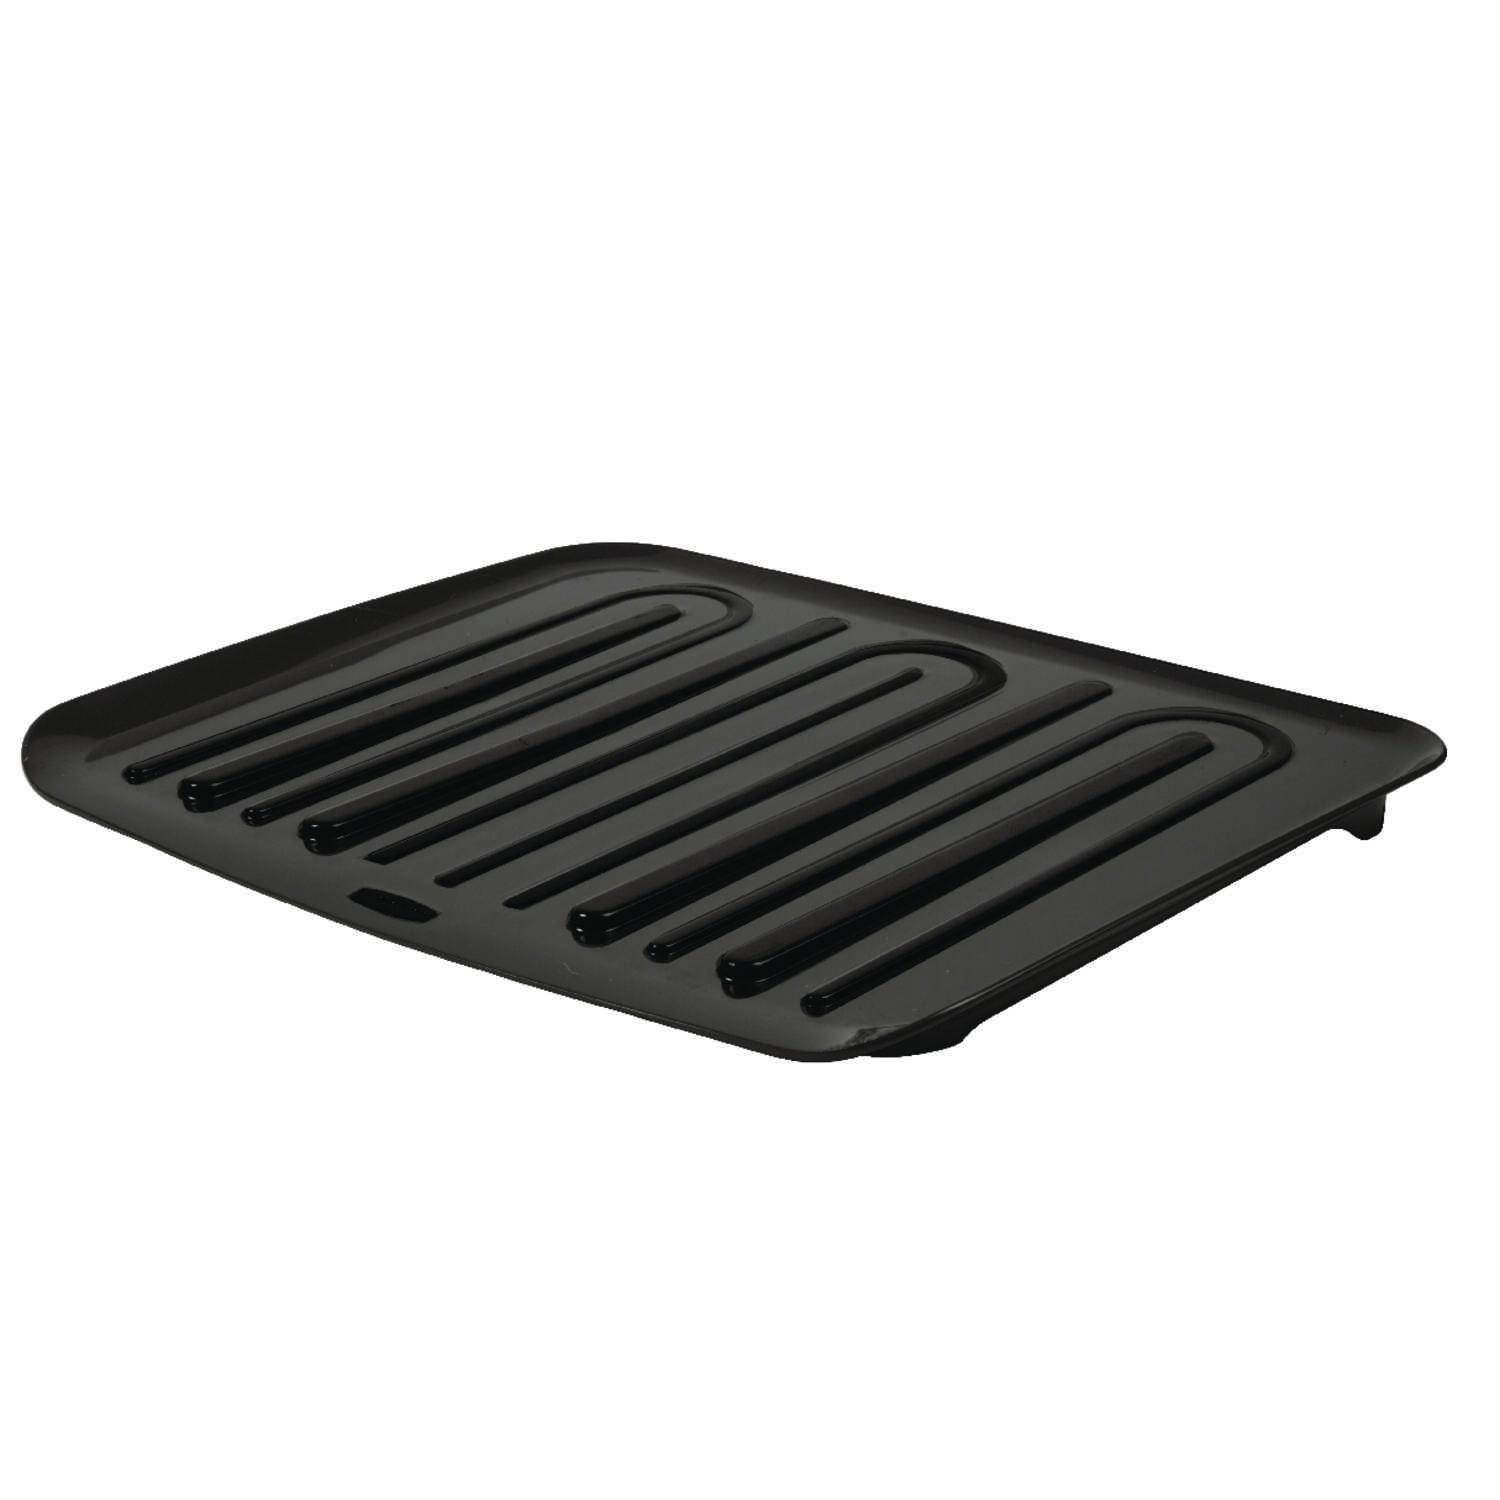 Rubbermaid  1.3 in. H x 18 in. W x 14.8 in. L Plastic  Dish Drainer  Black